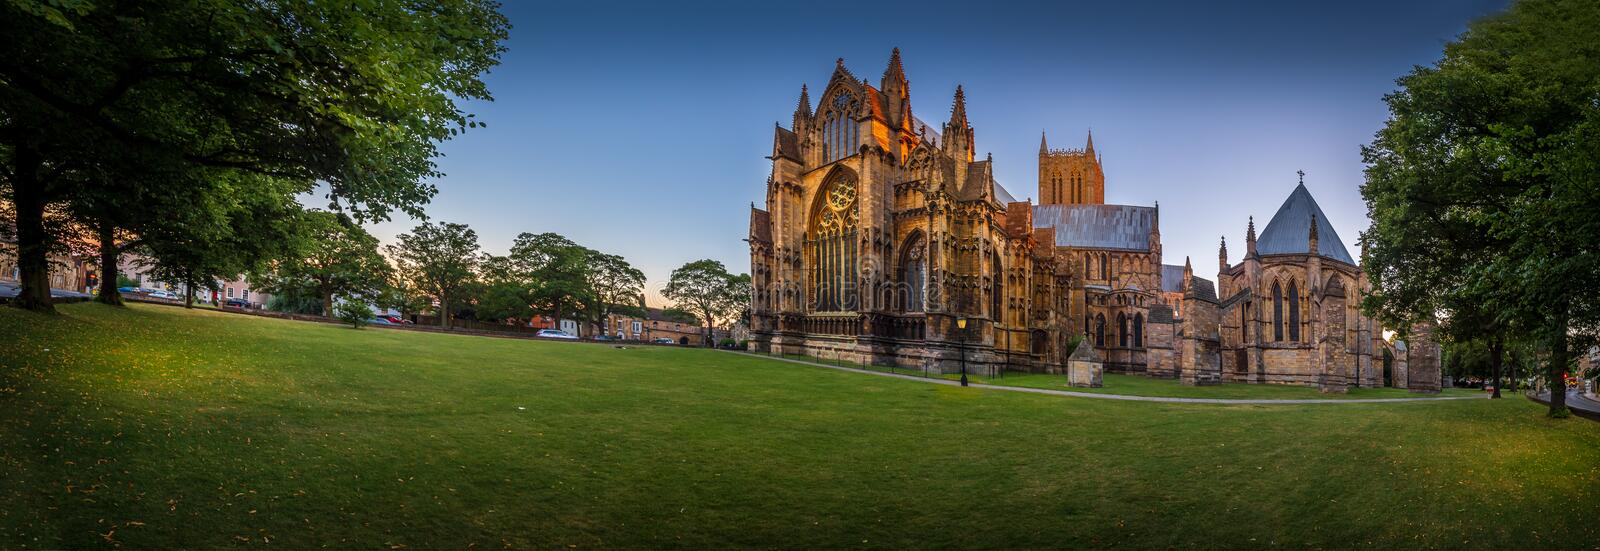 Last light over Lincoln Cathedral. Extra wide angle shot of Lincoln Cathedral and Green, Lincoln, Lincolnshire, United Kingdom stock photo